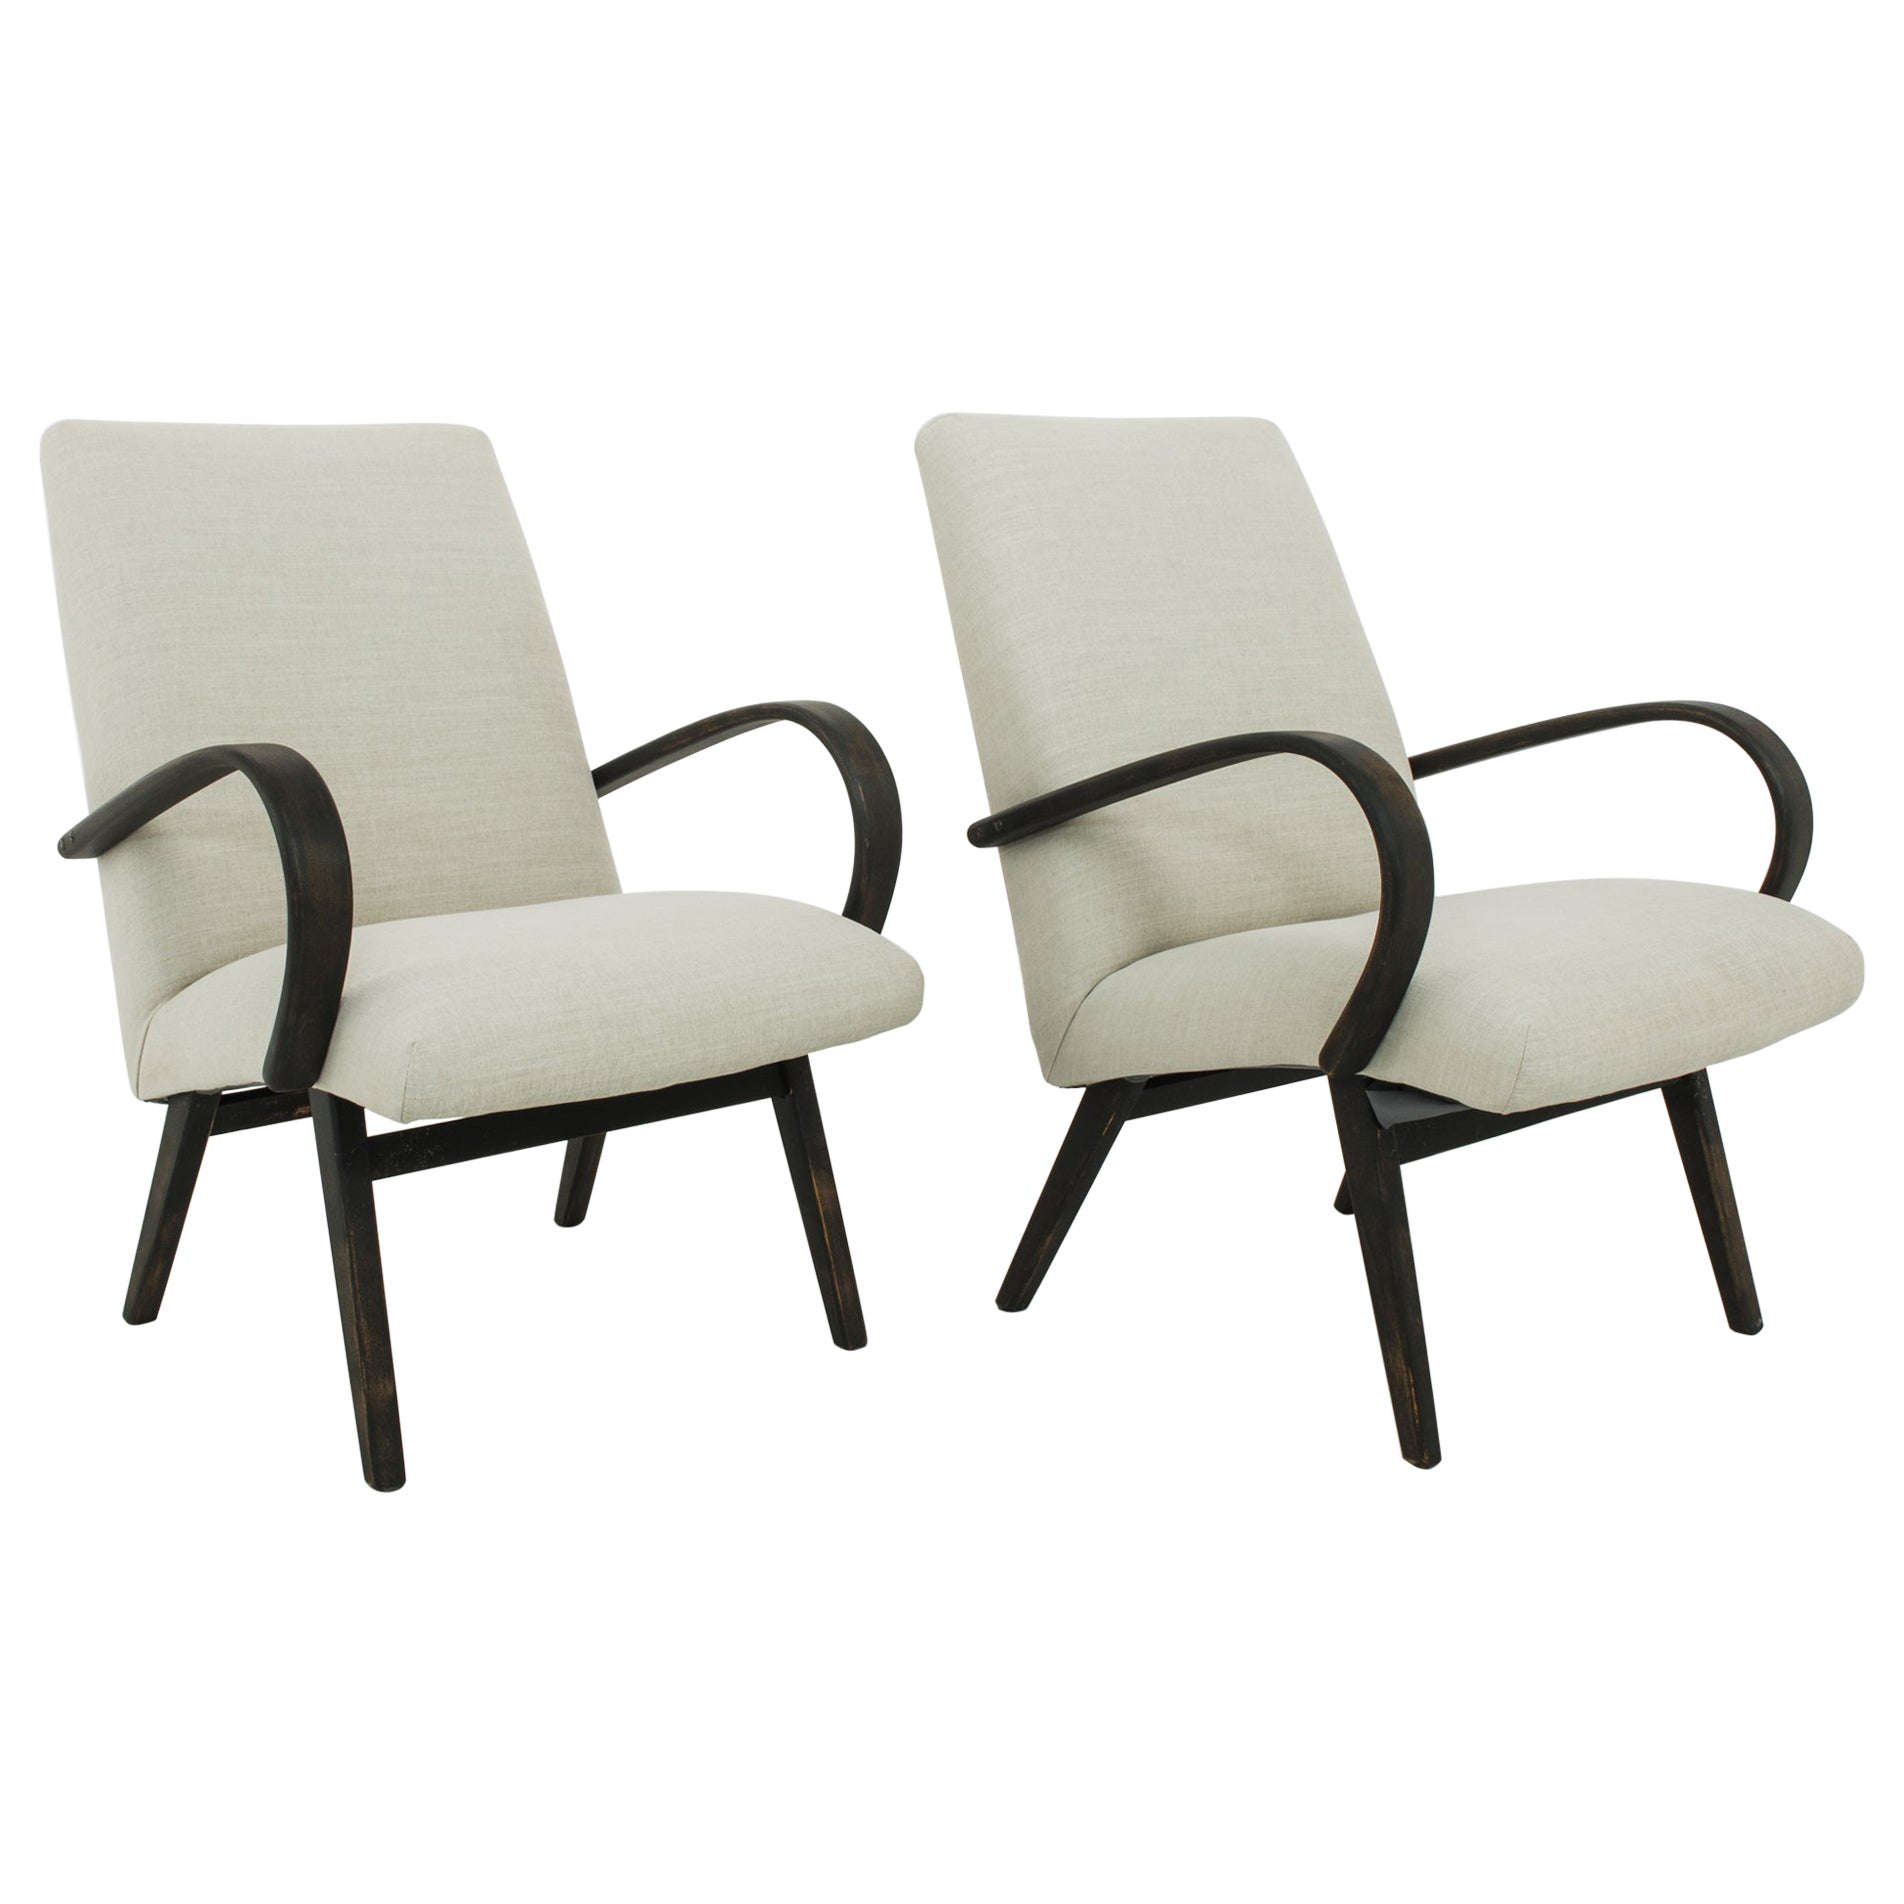 Mid-Century Czech Upholstered Lounge Chairs, a Pair